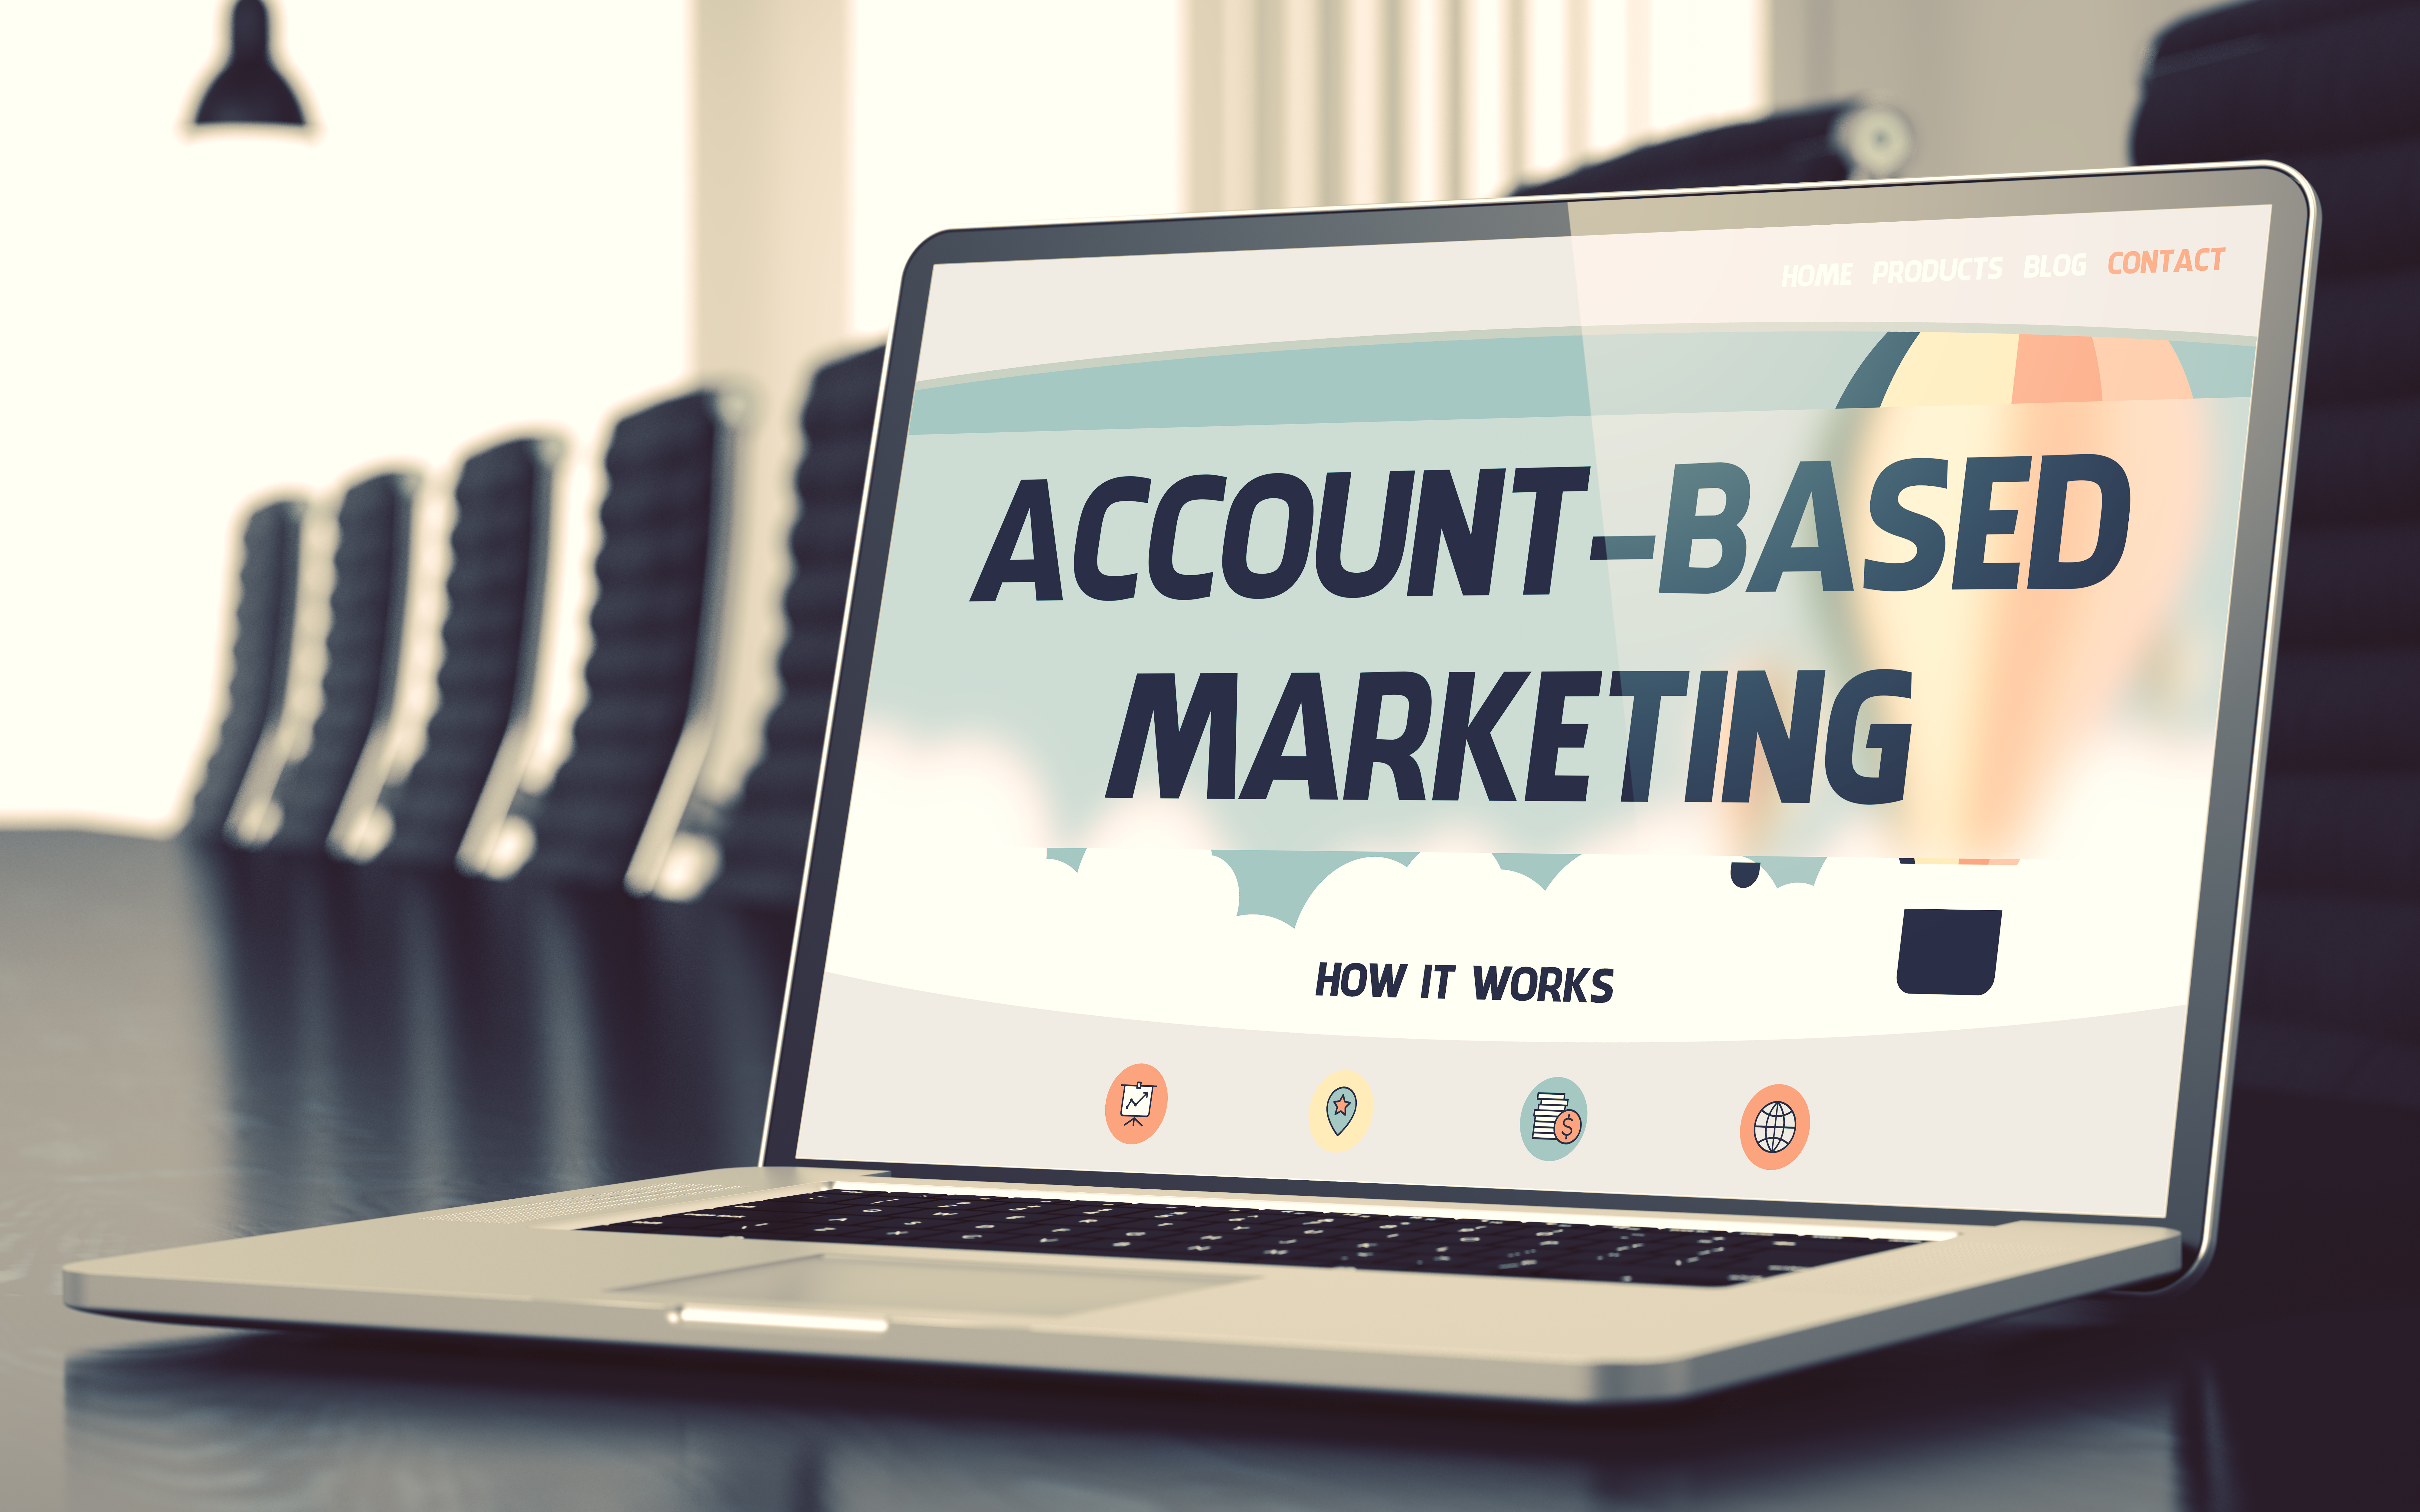 5 reasons why Account Based Marketing is more relevant than ever